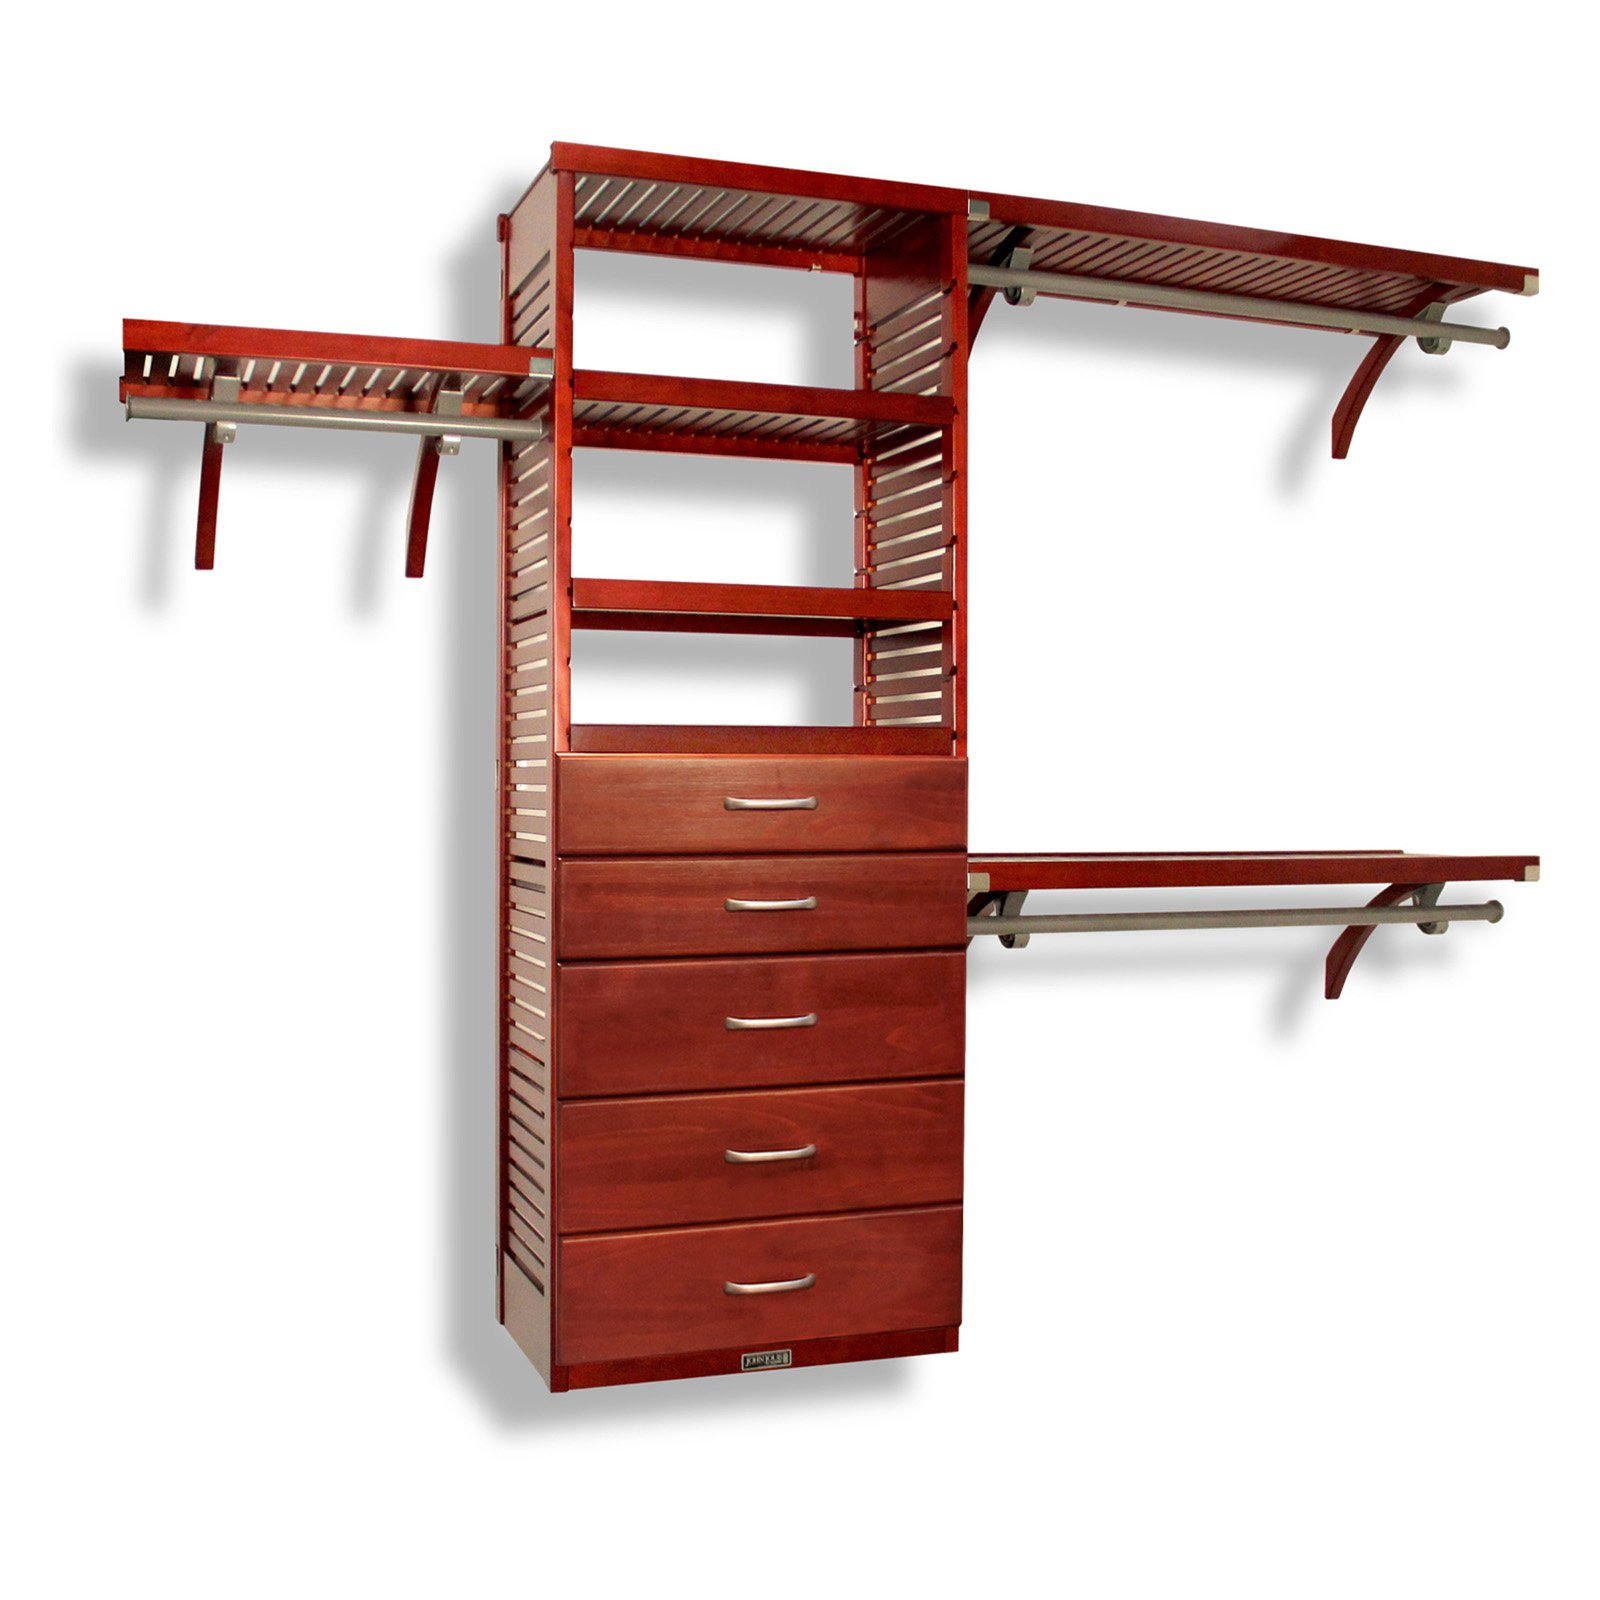 Deluxe Closet System Drawer Kit Red Mahogany